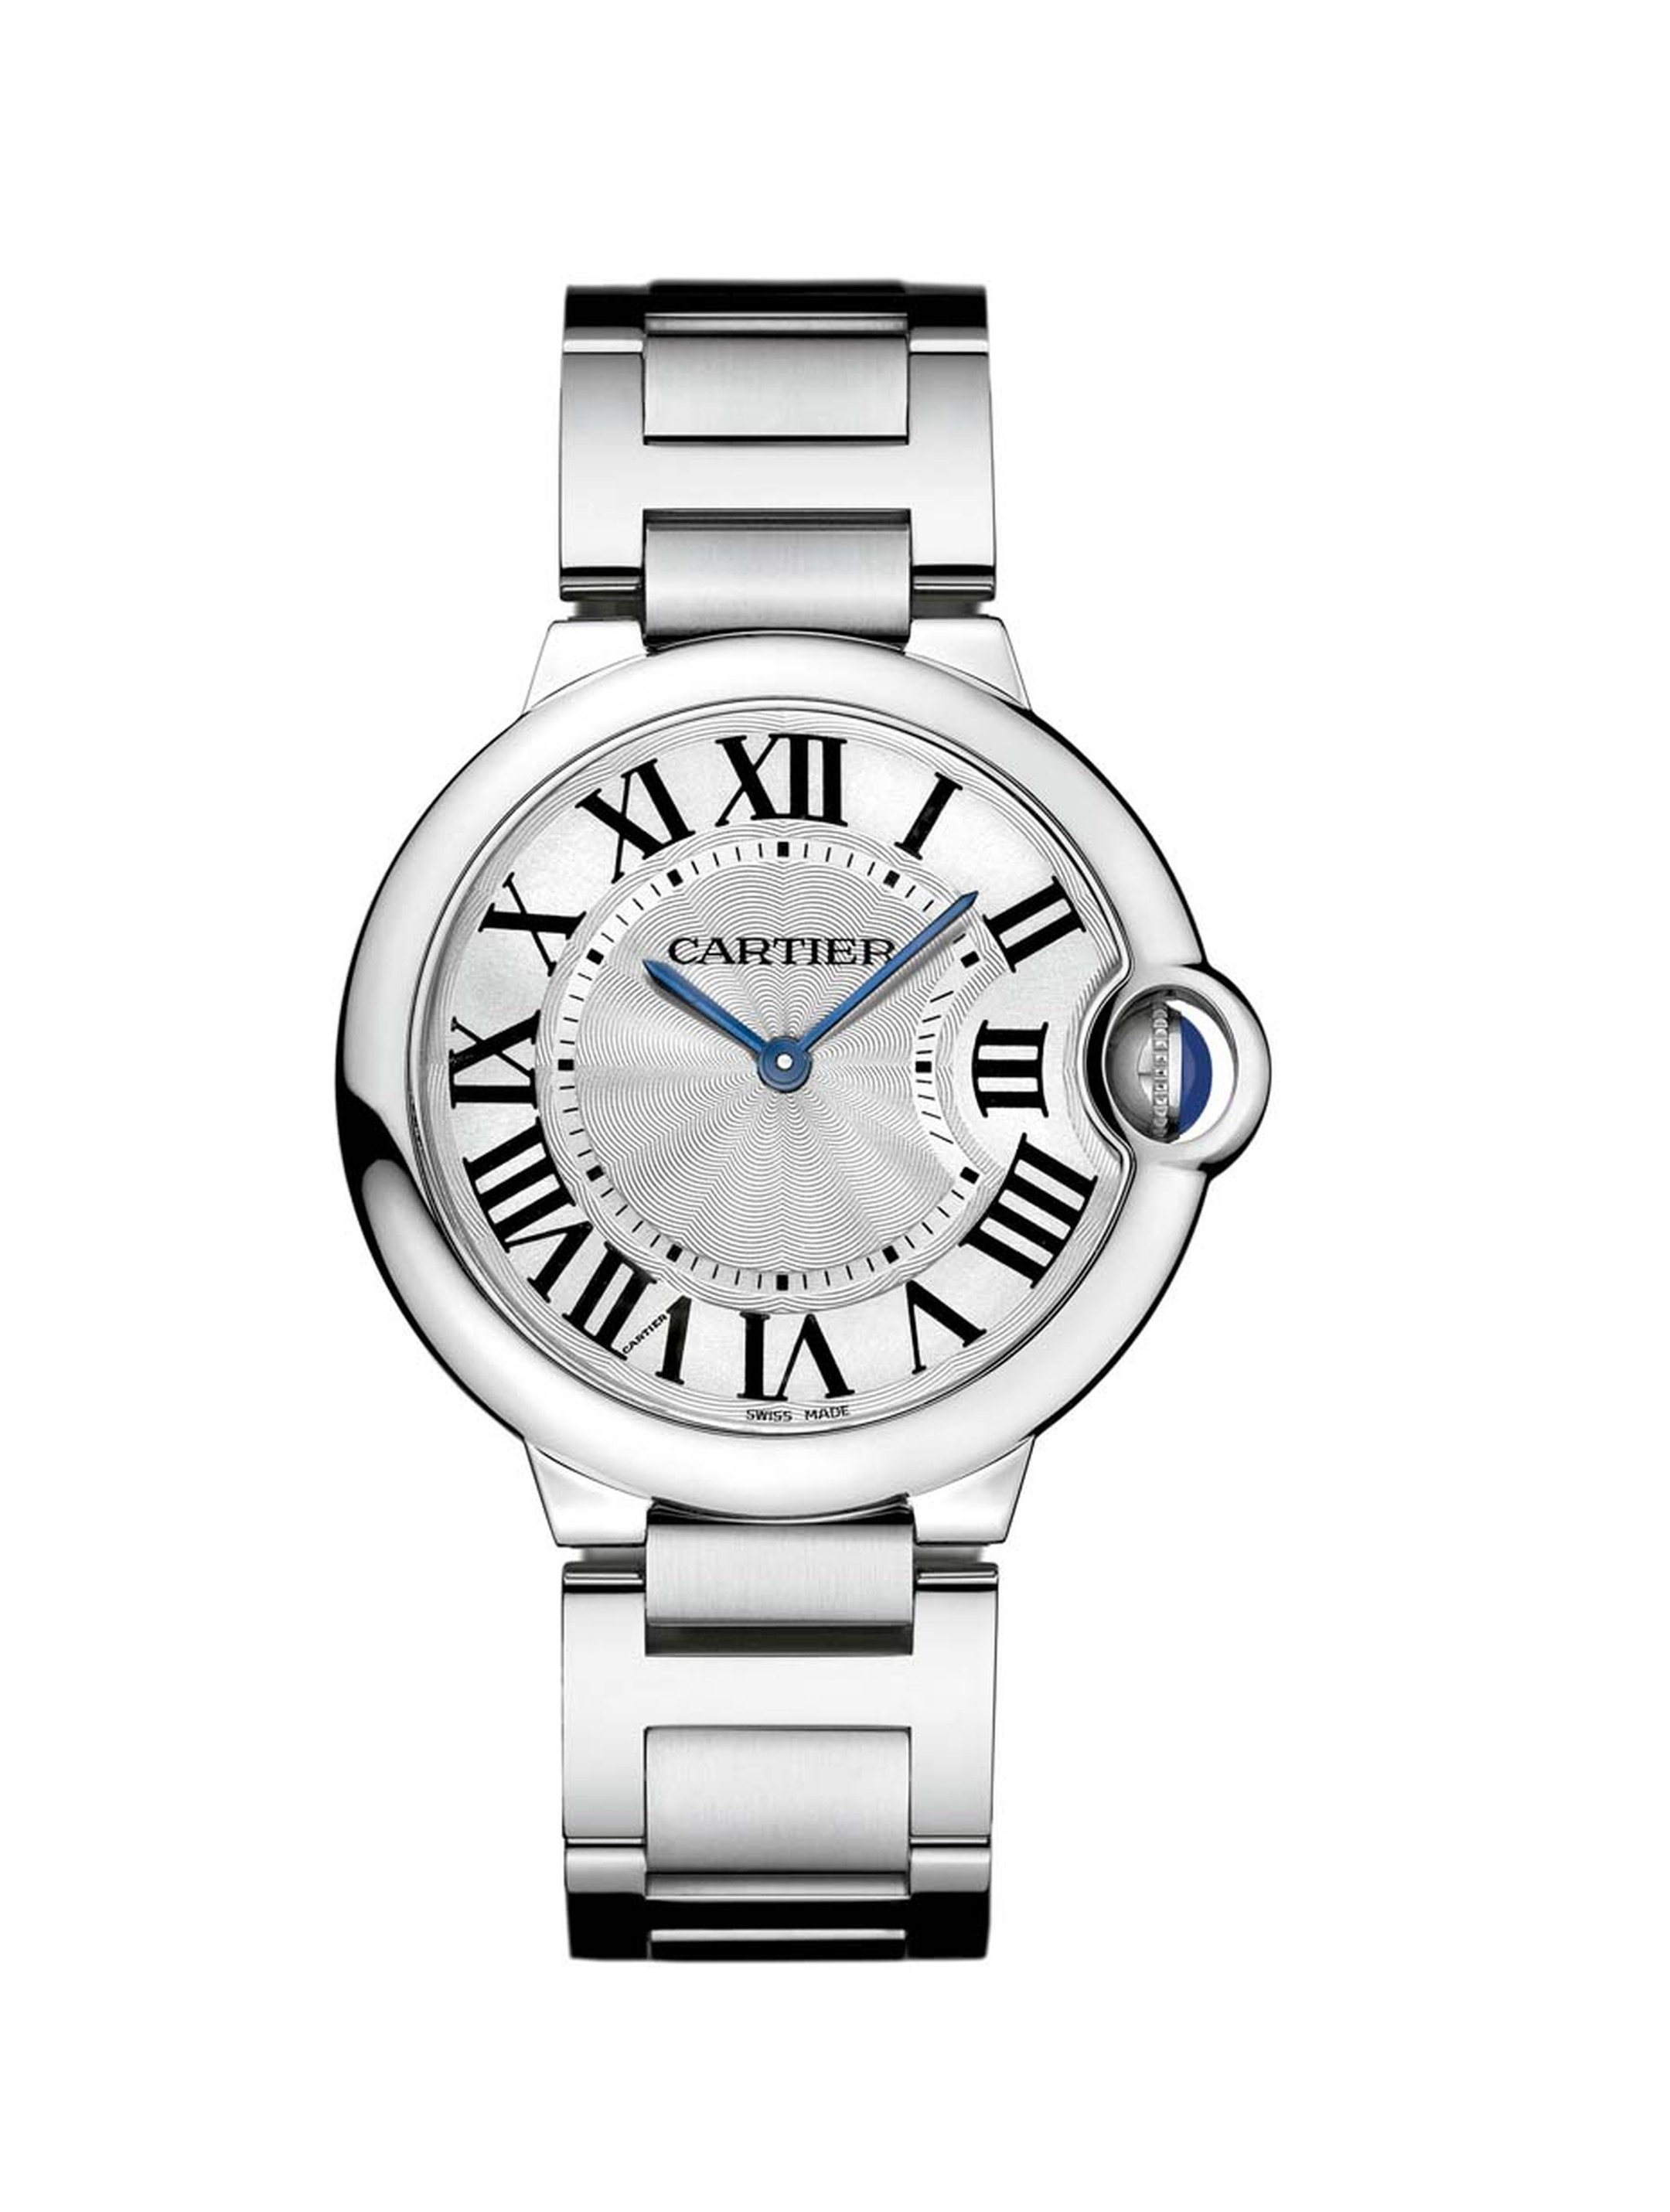 The Ballon Bleu de Cartier watch, released in 2007, is another classic in the making with beautiful curves and rounded edges that give the watch a unique sensation of buoyancy (£3,850).